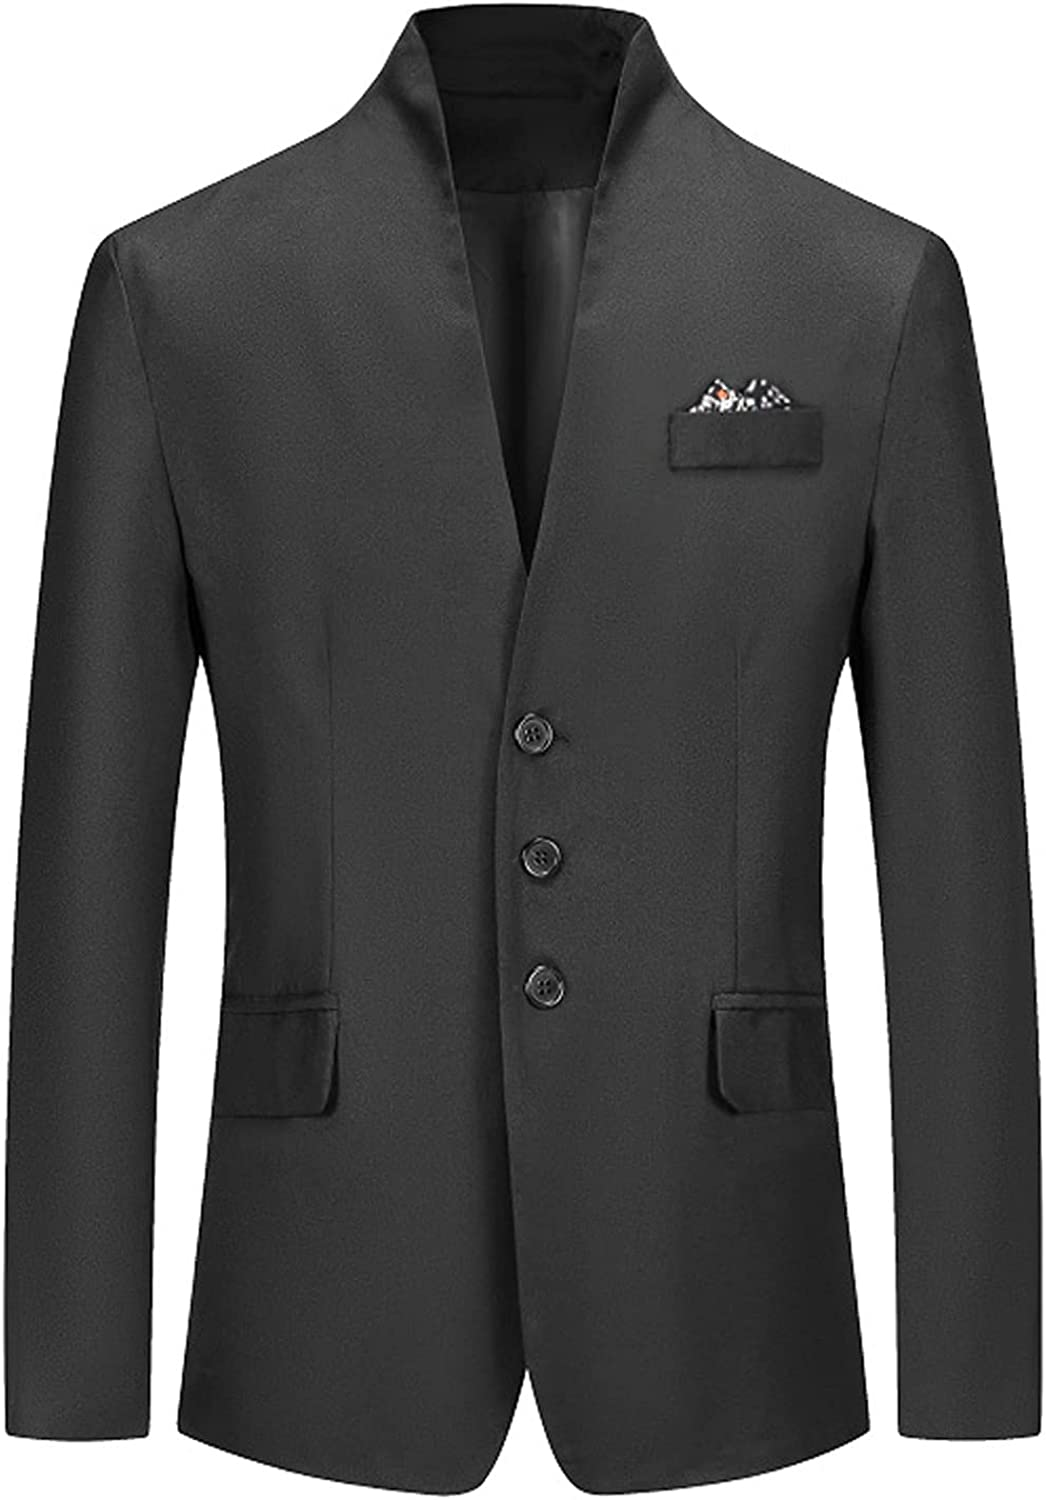 Mens Blazer Jacket Slim Fit Casual Three Button Solid Suit Separate Jacket Daily Bussiness Wedding Jacke Dress Tops